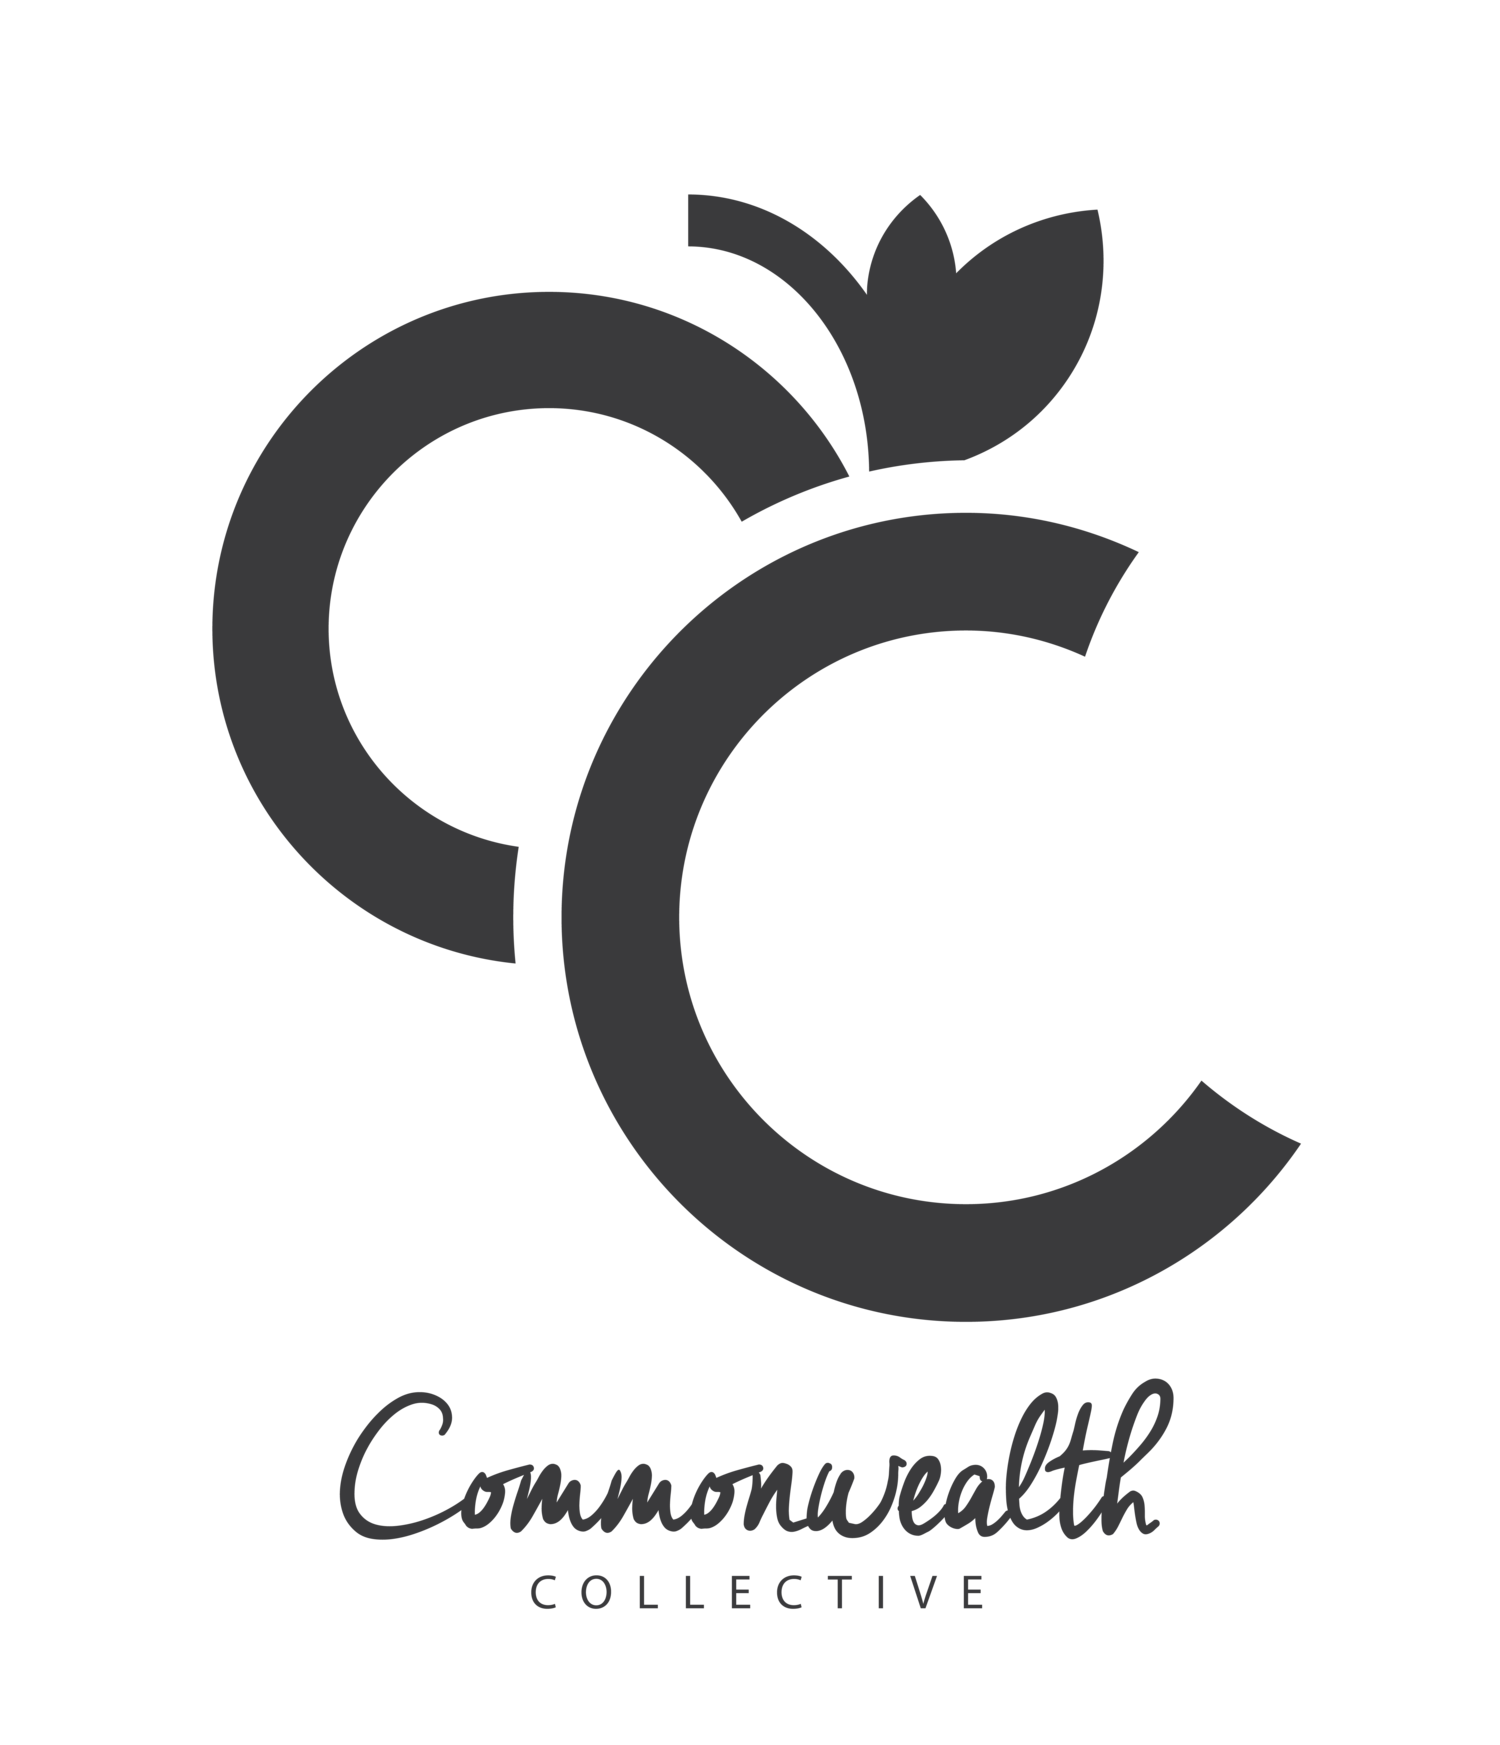 Commonwealth Collective